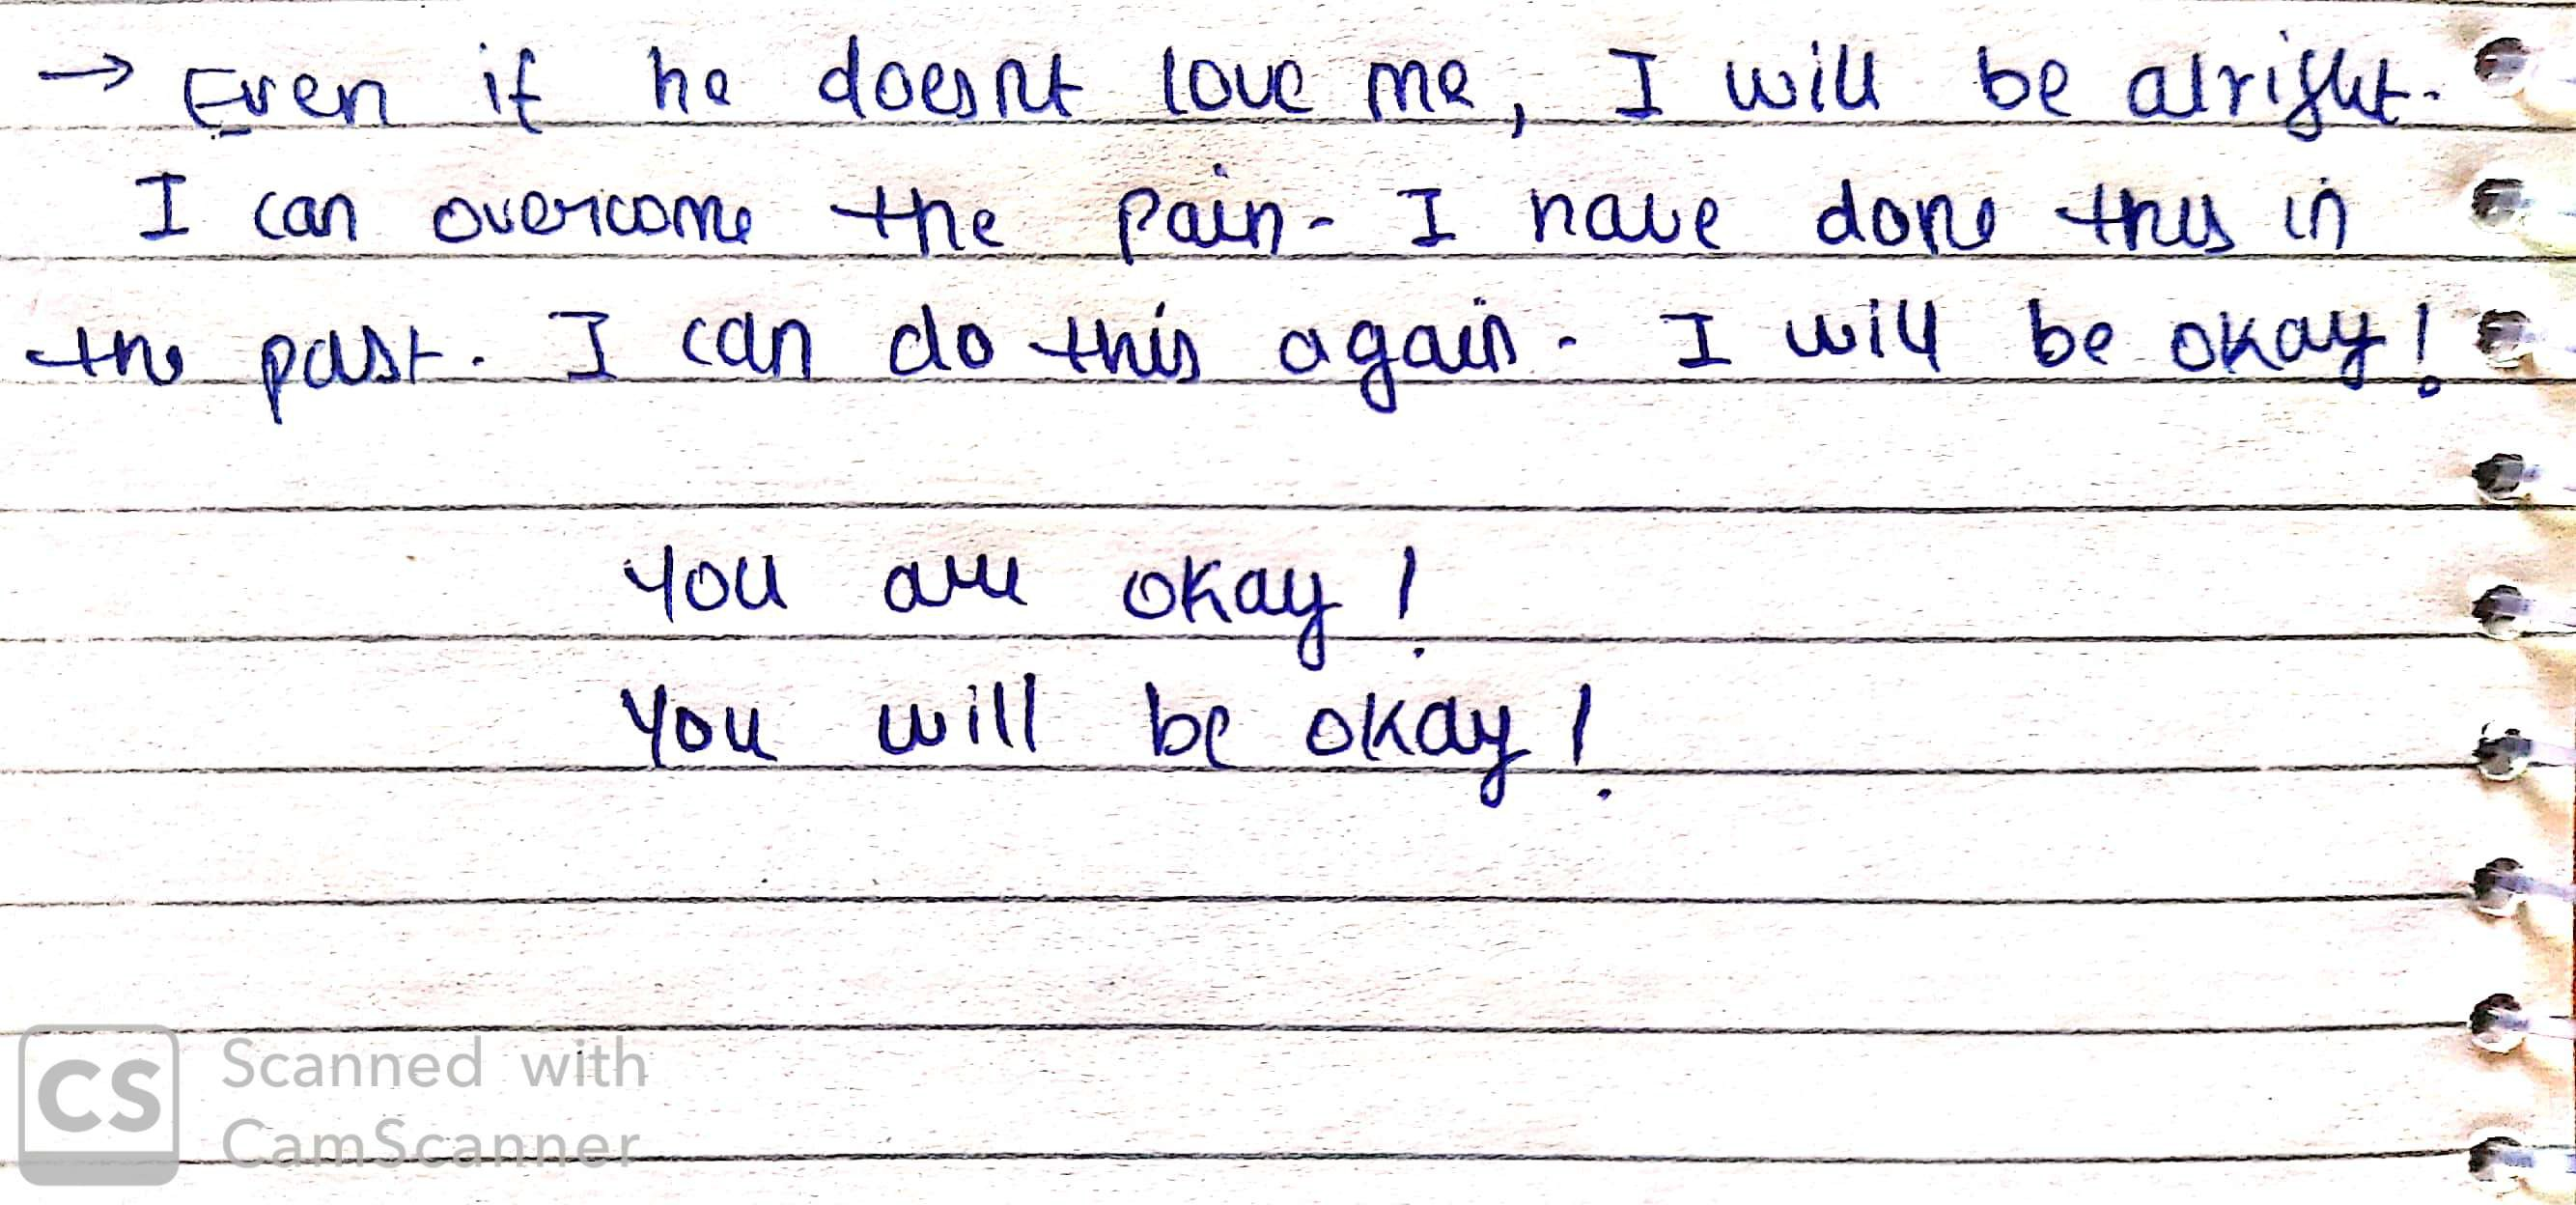 A paper with the worst consequence of him not loving me. It says that you are okay and you will be okay